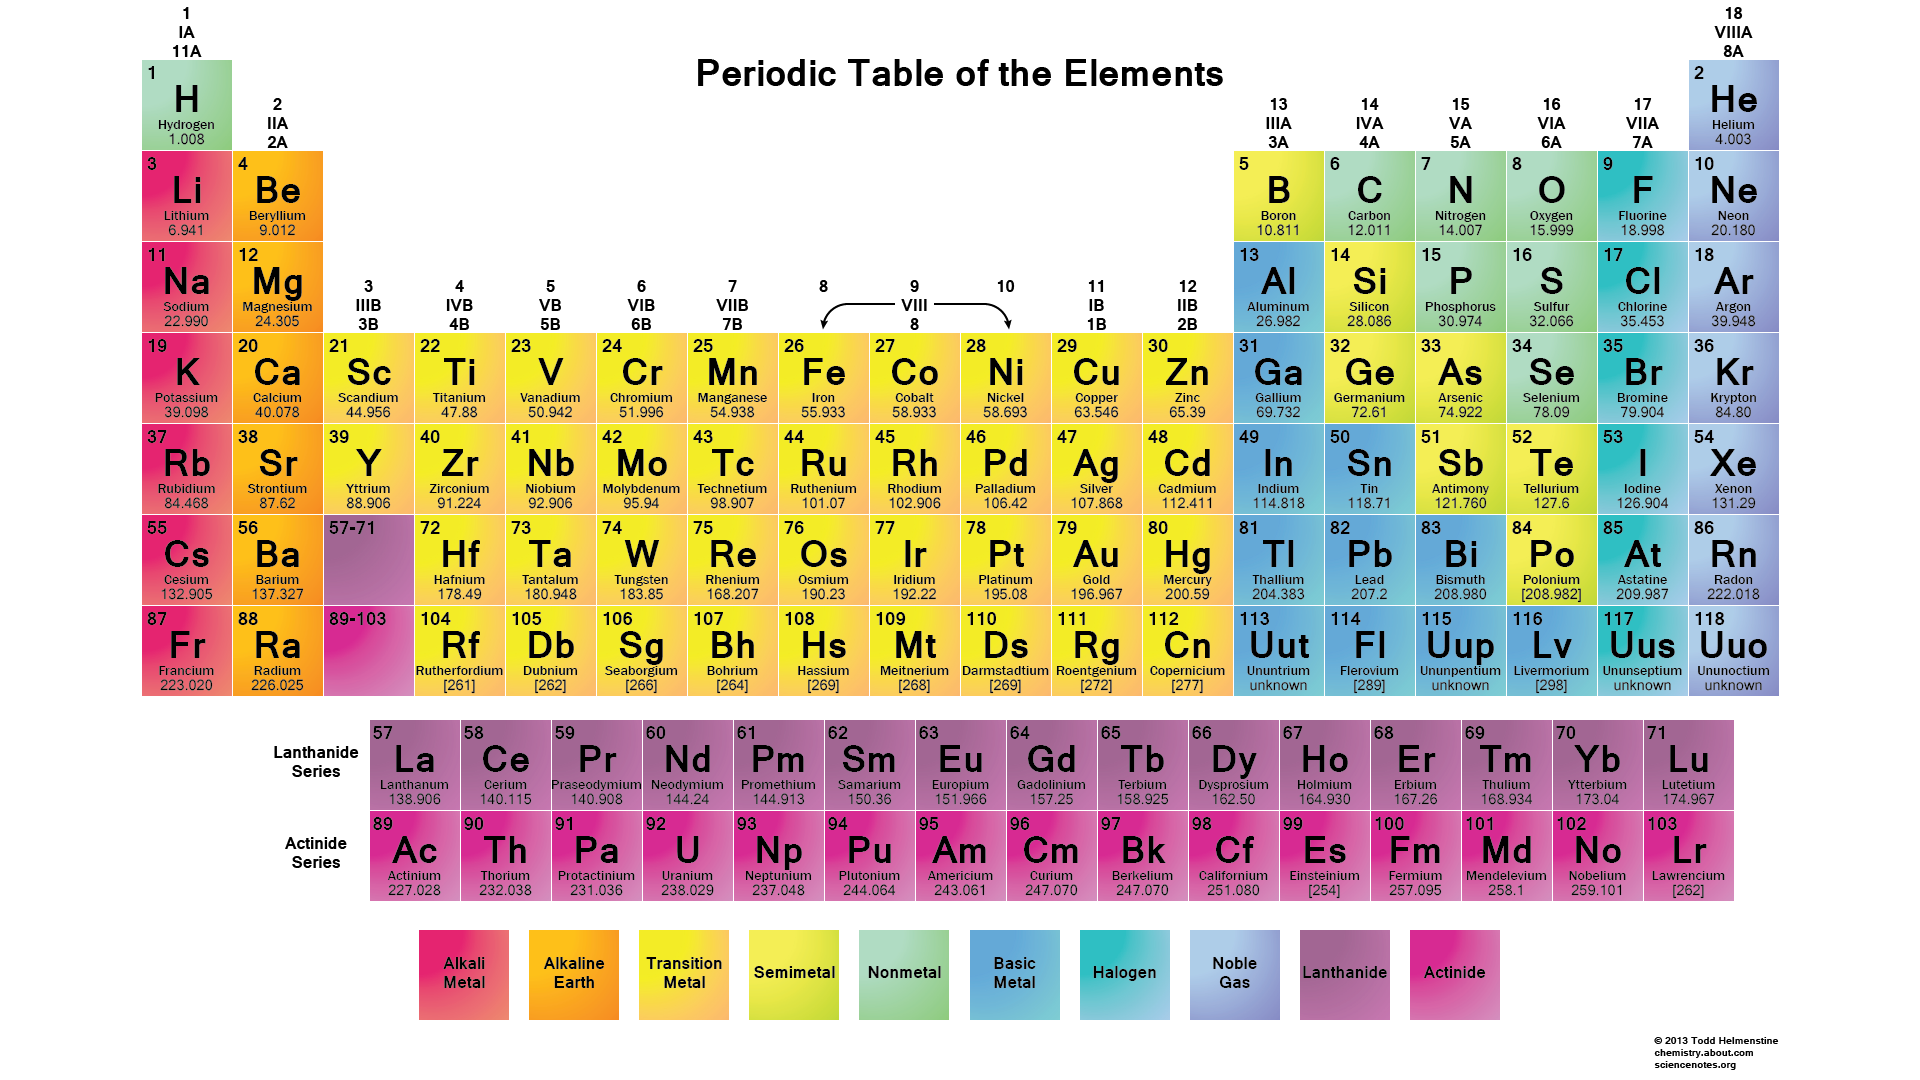 30 printable periodic tables for chemistry science notes and periodic table wallpaper gamestrikefo Images